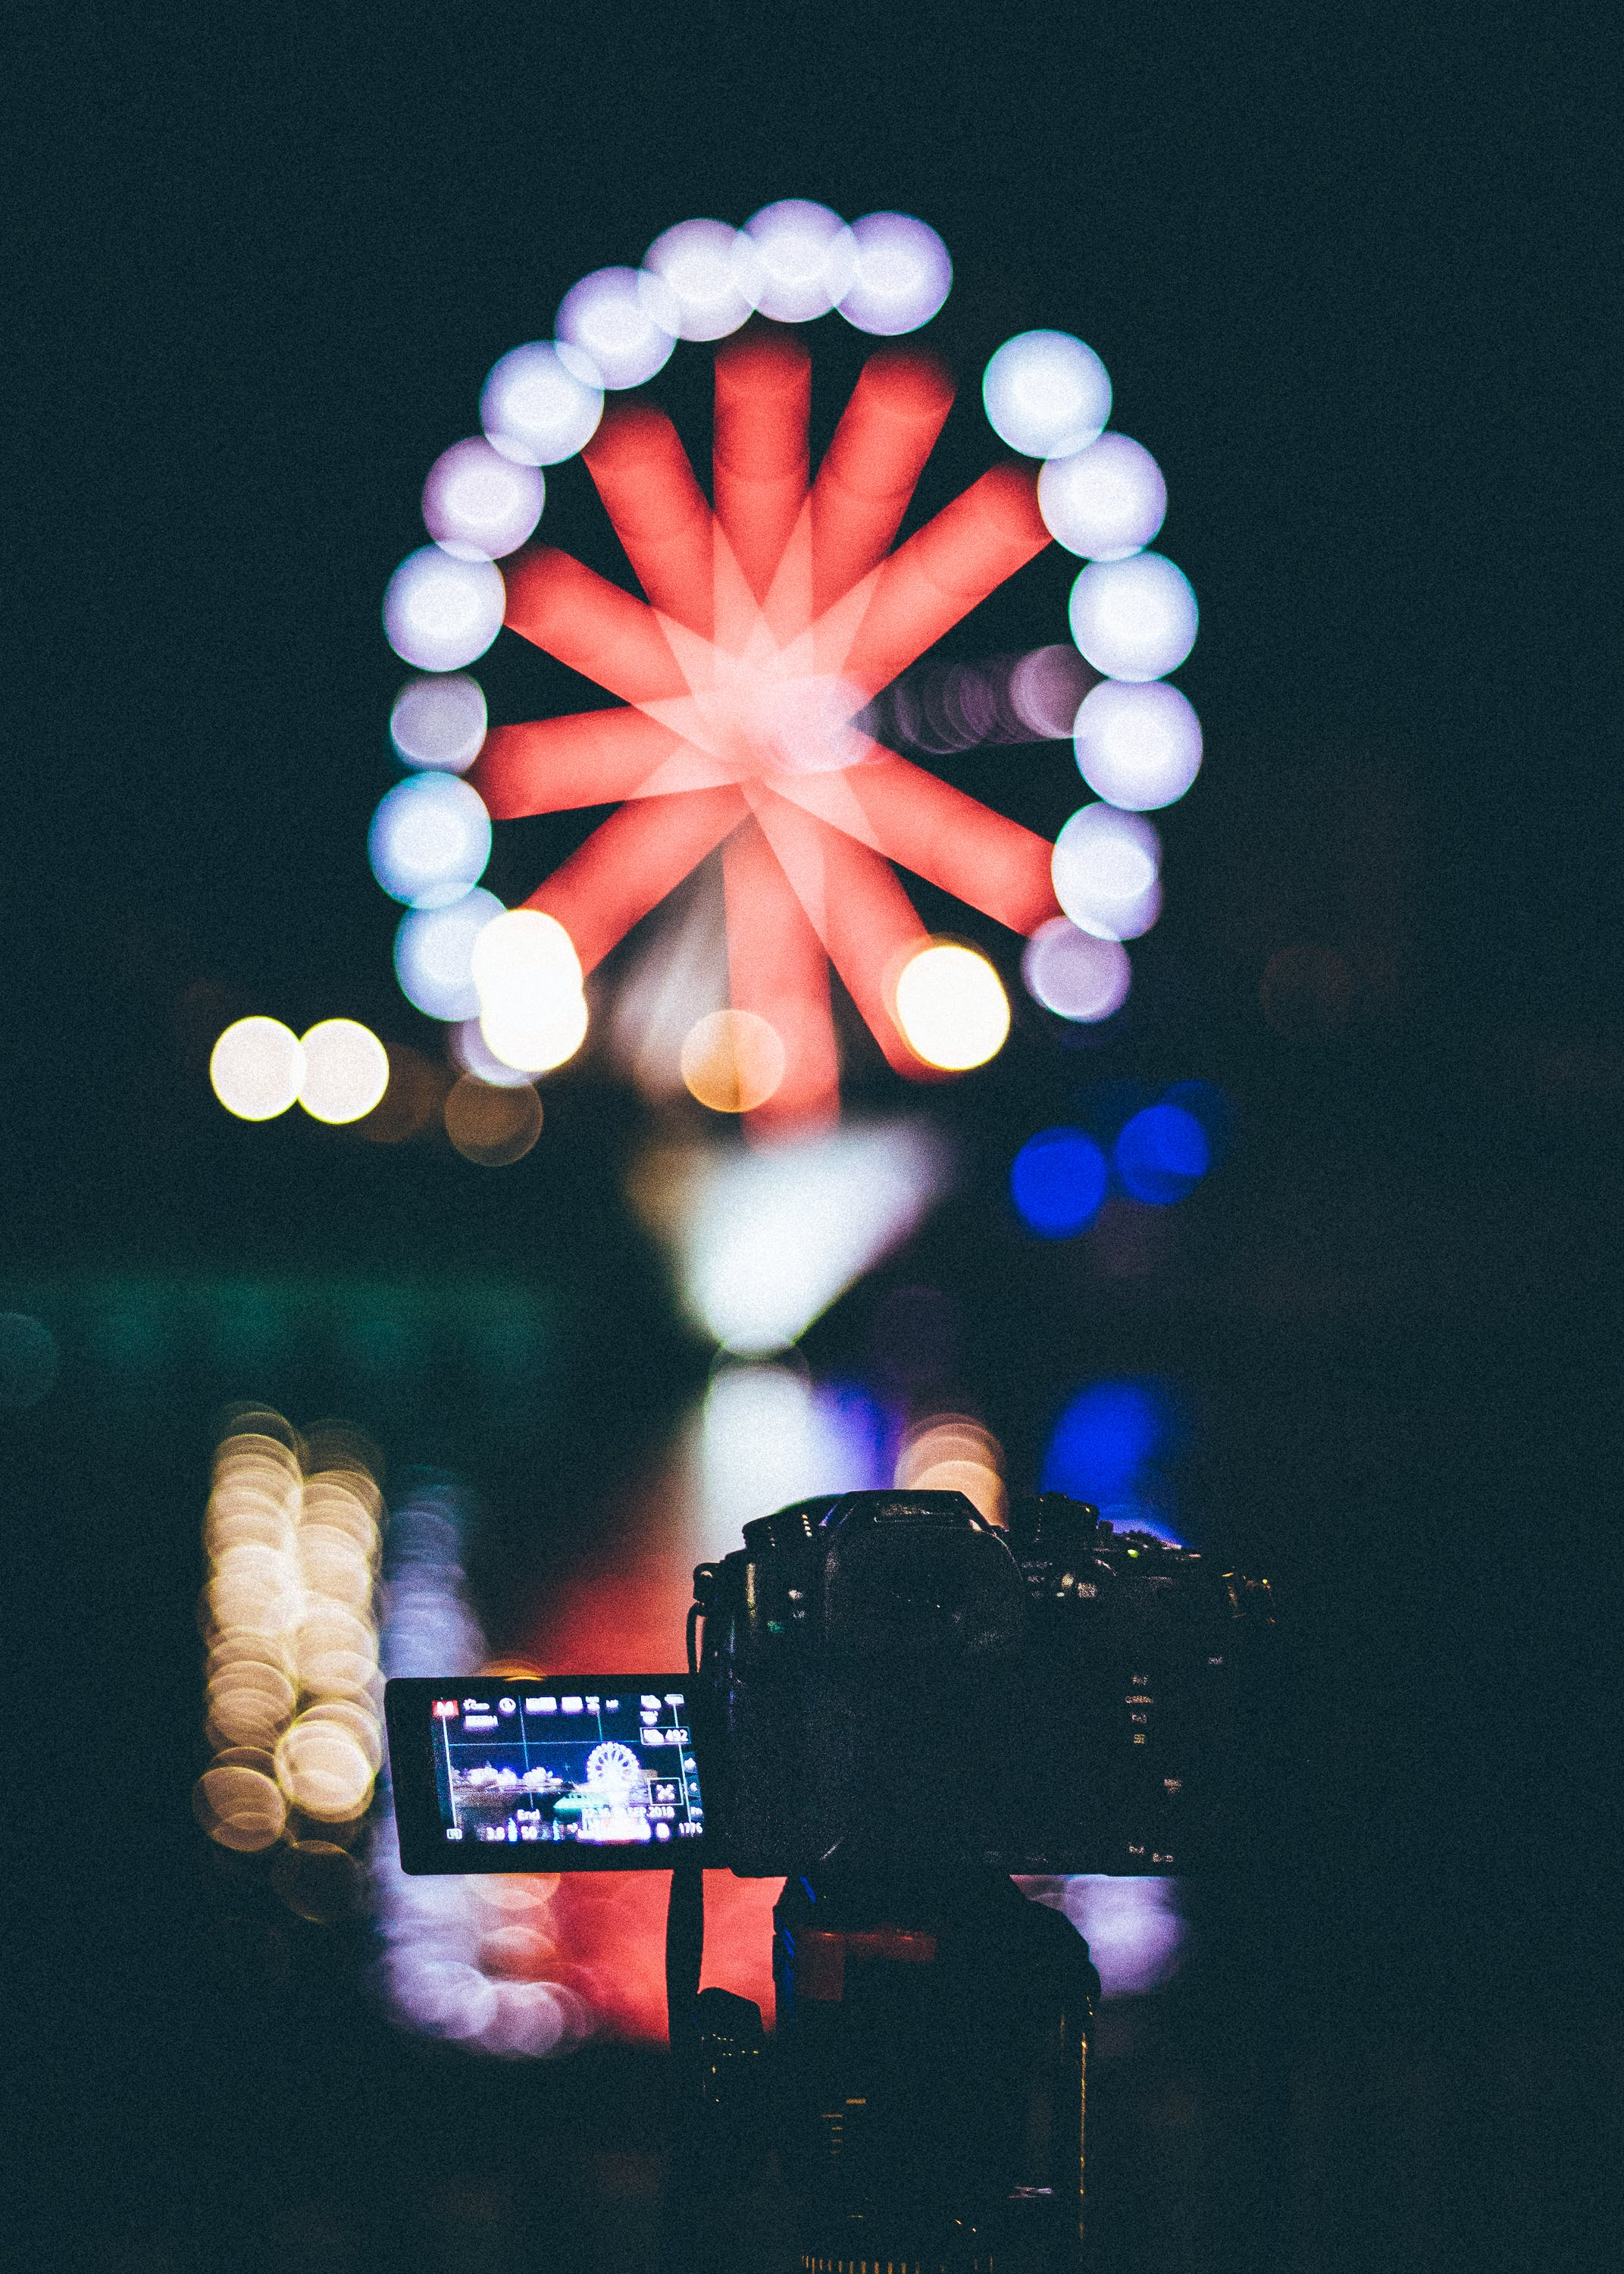 Selective Focus Photography of Dslr Camera